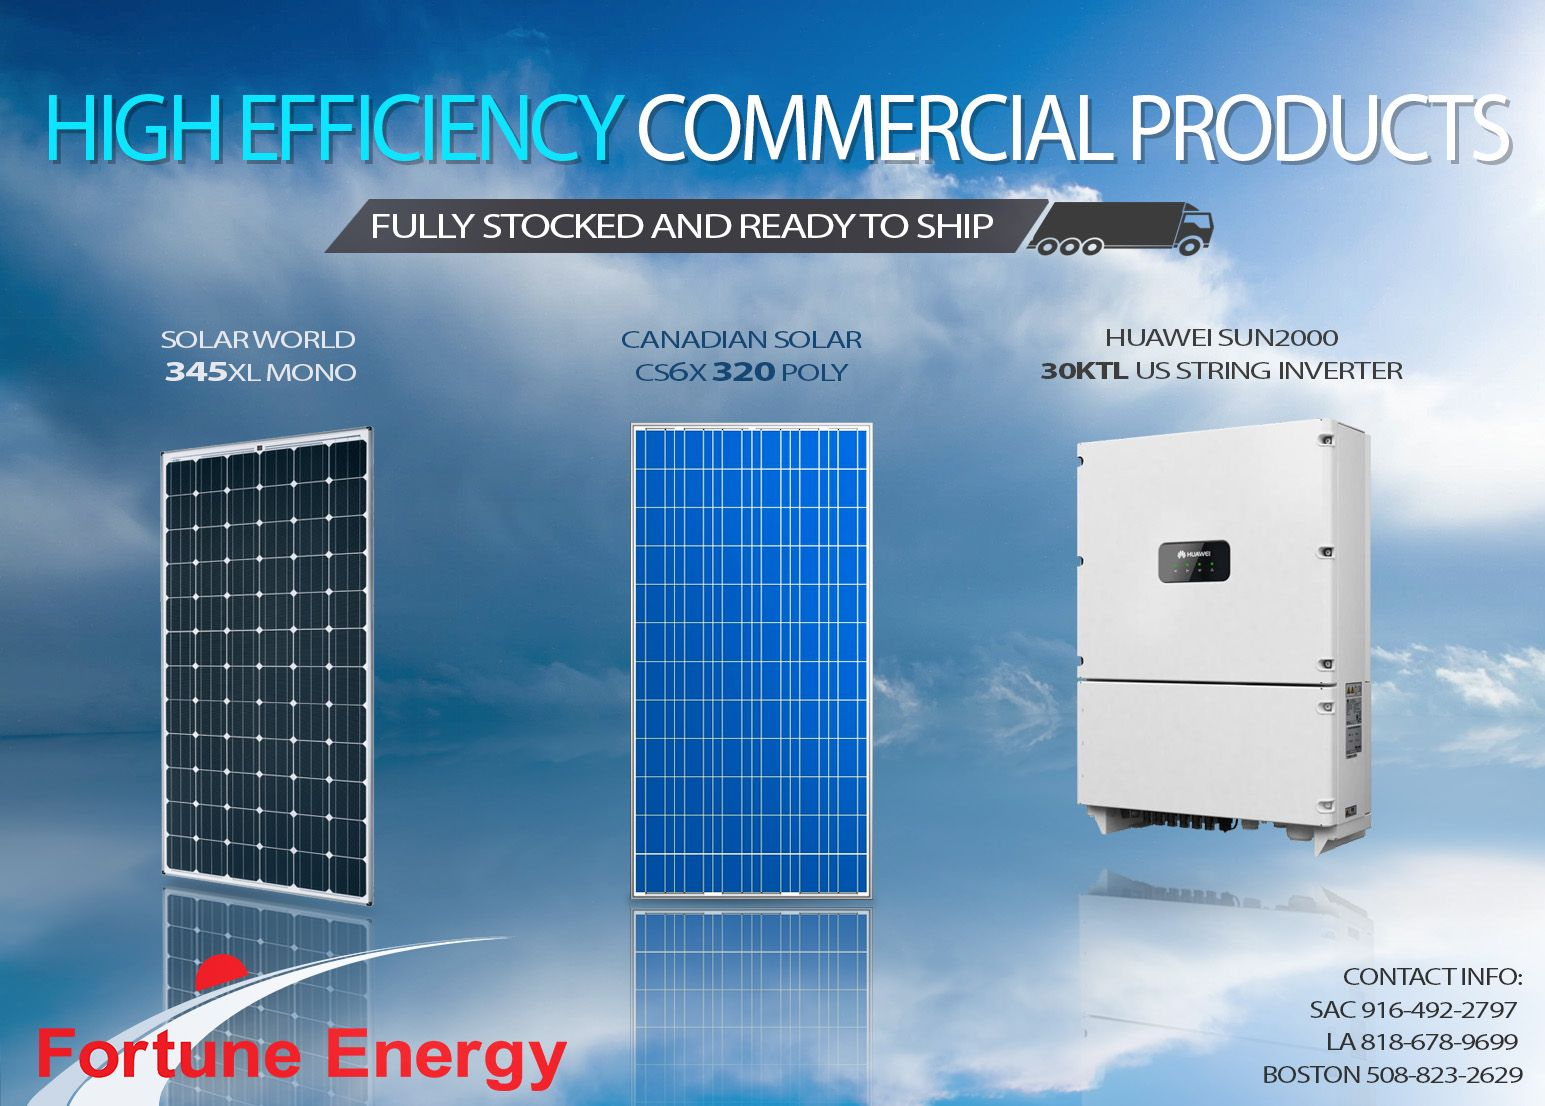 Fortune Energy Competitive Pricing and Full Turnkey